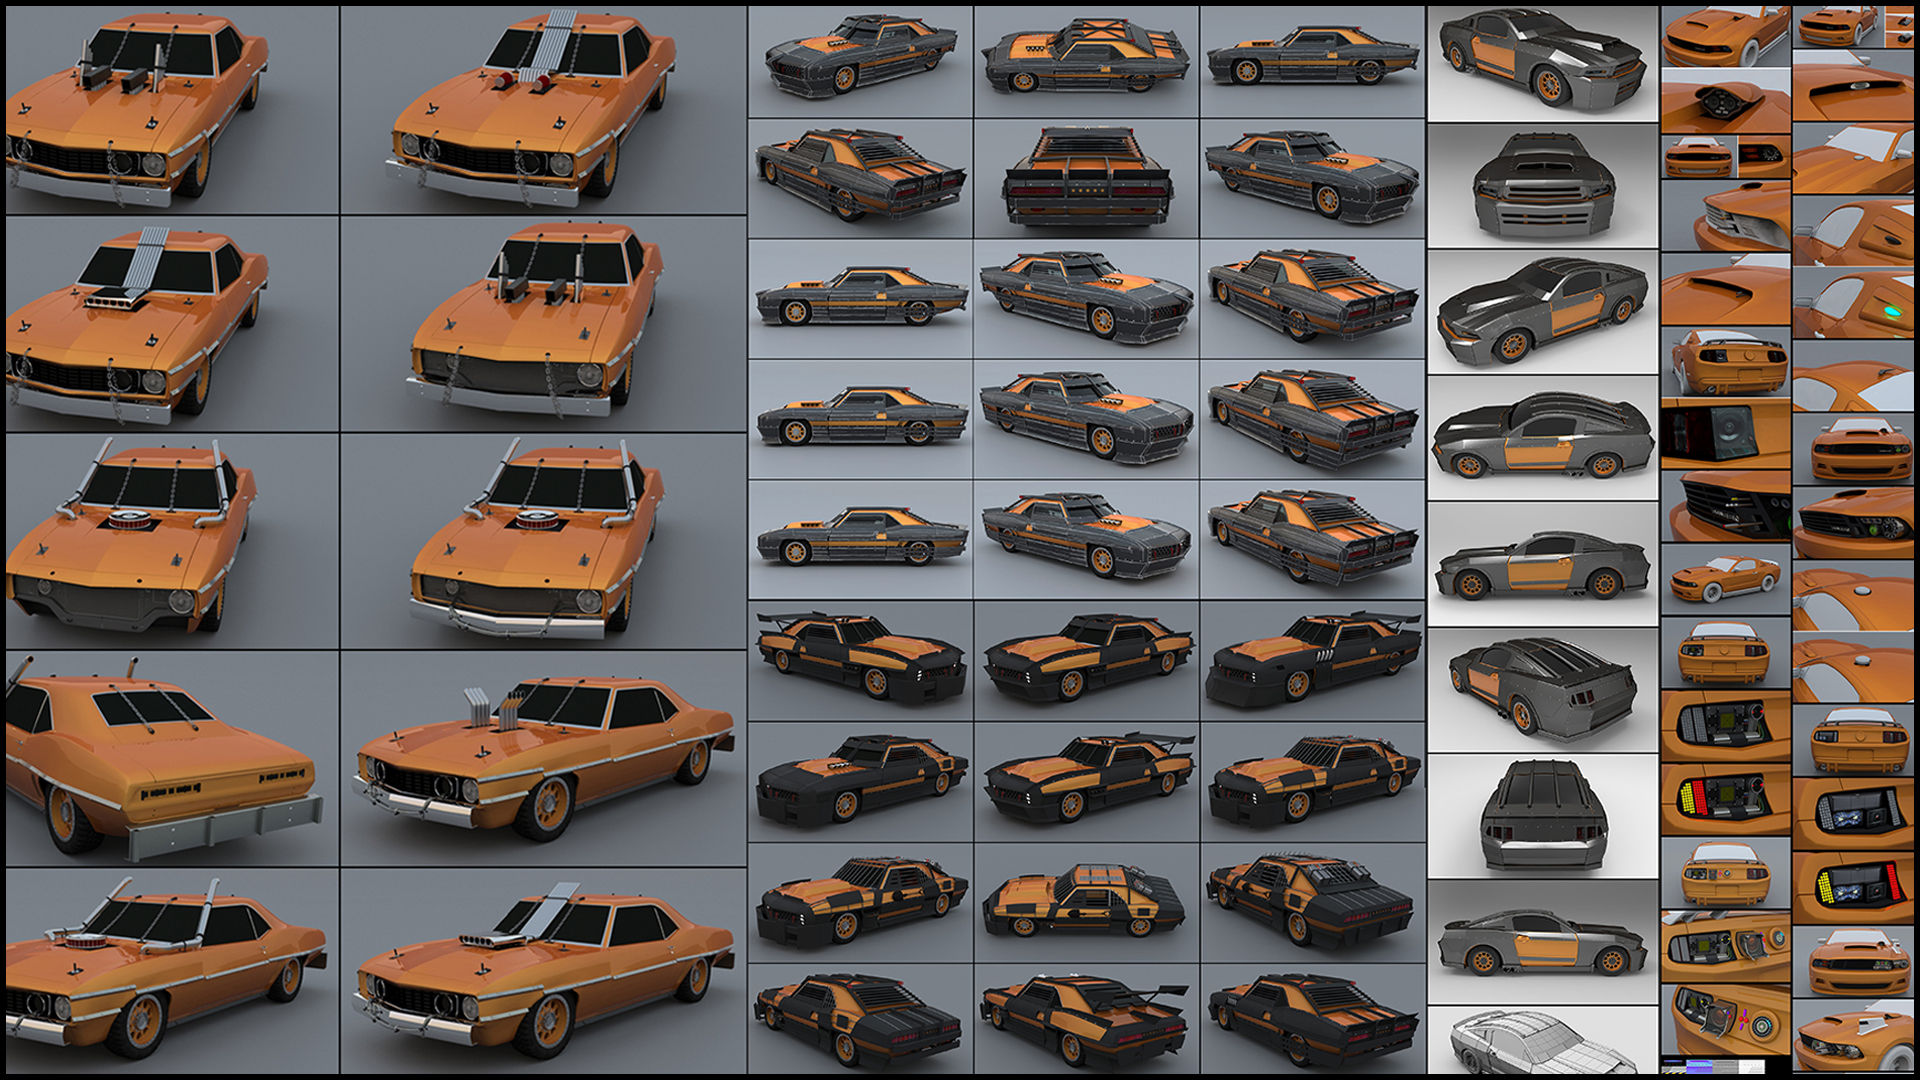 2010-2012_The Crew_F.Beudin_Sketches Cars